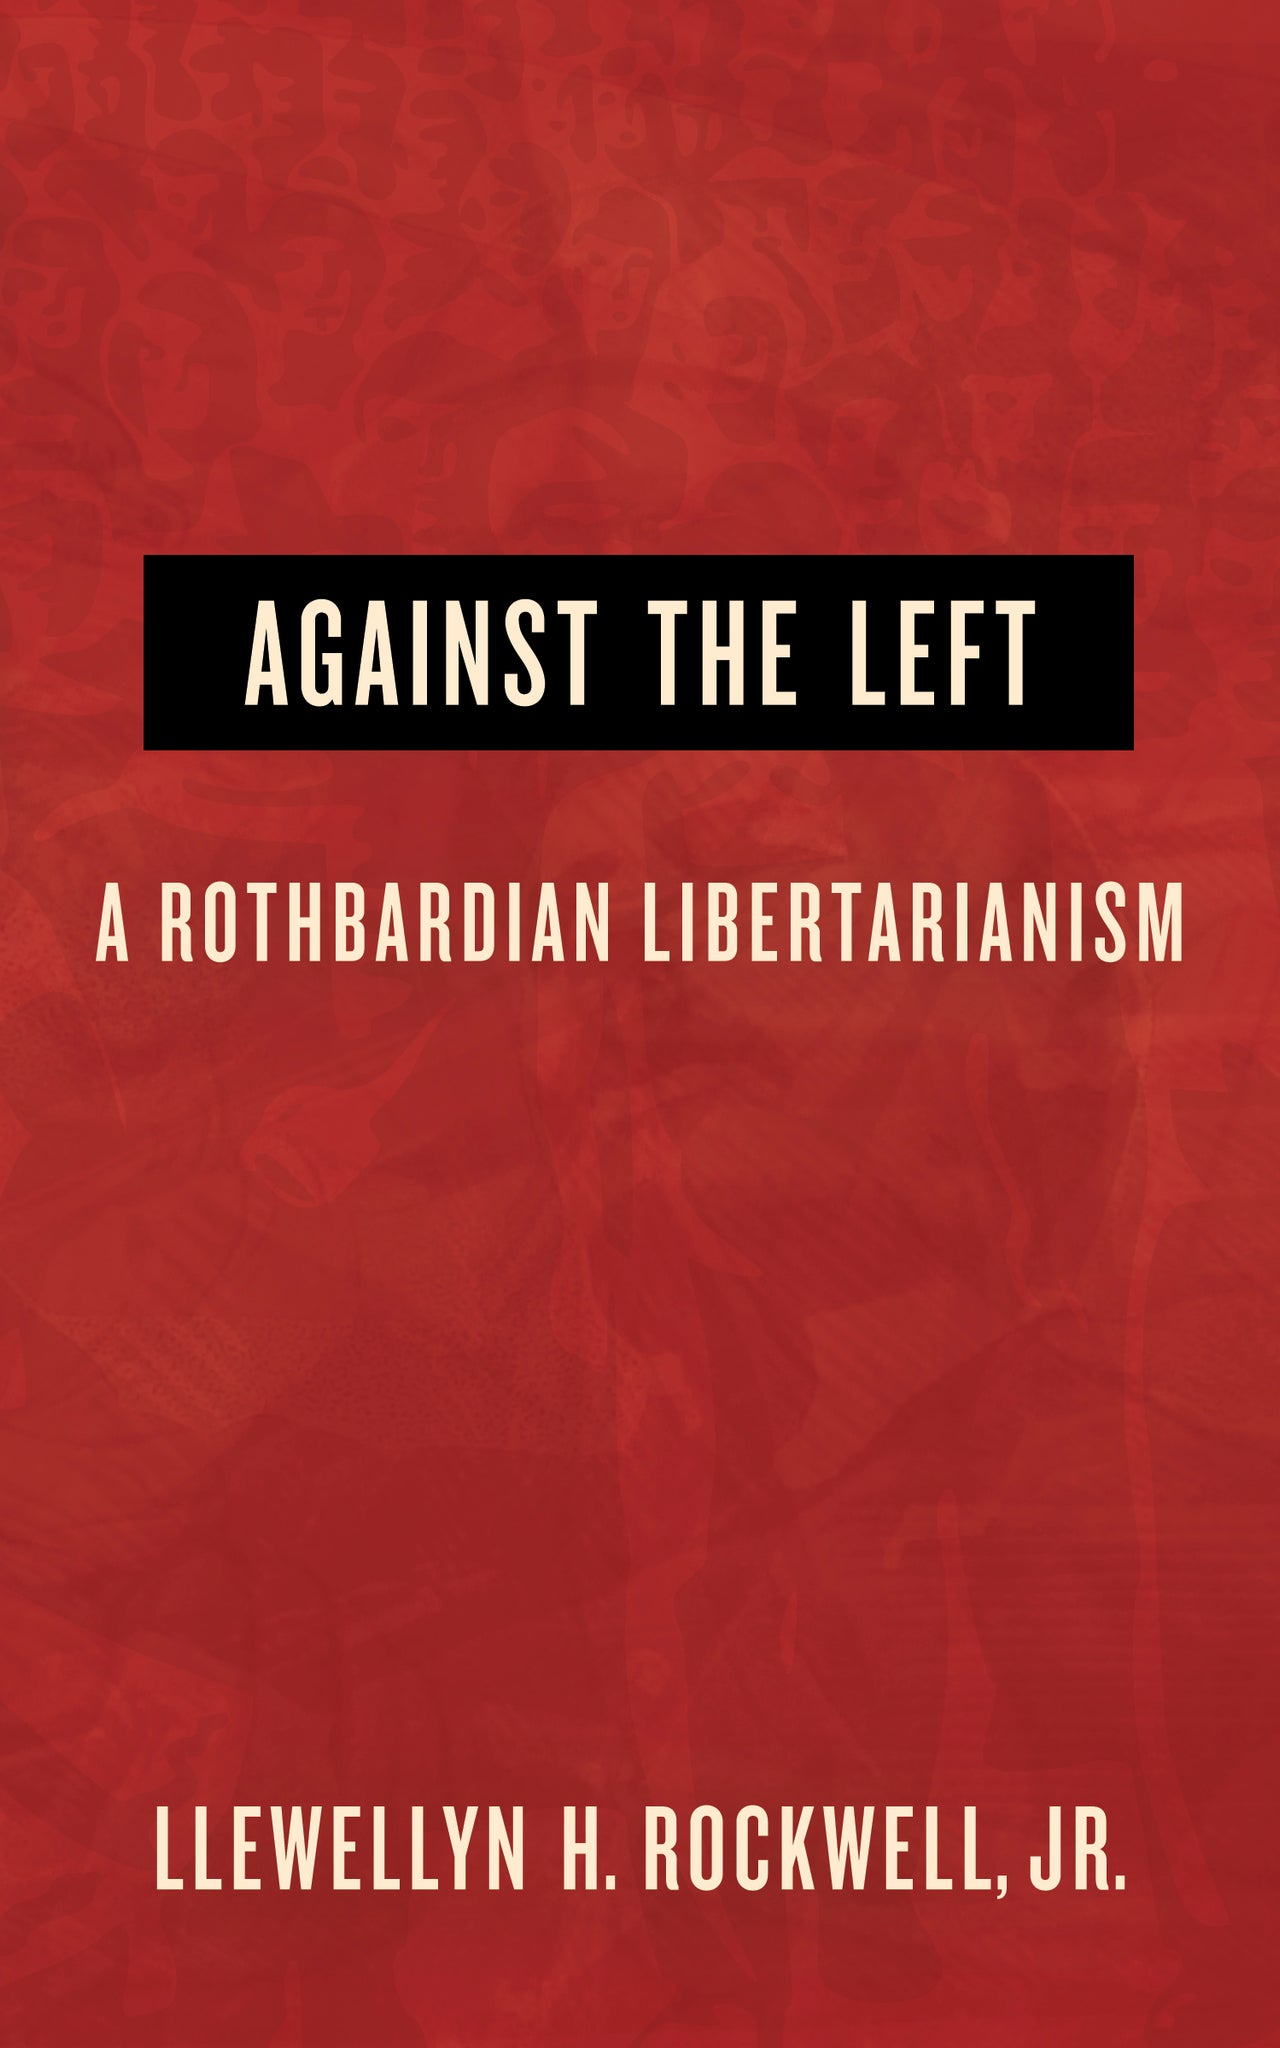 Against the Left: A Rothbardian Libertarianism- Autographed by Lew